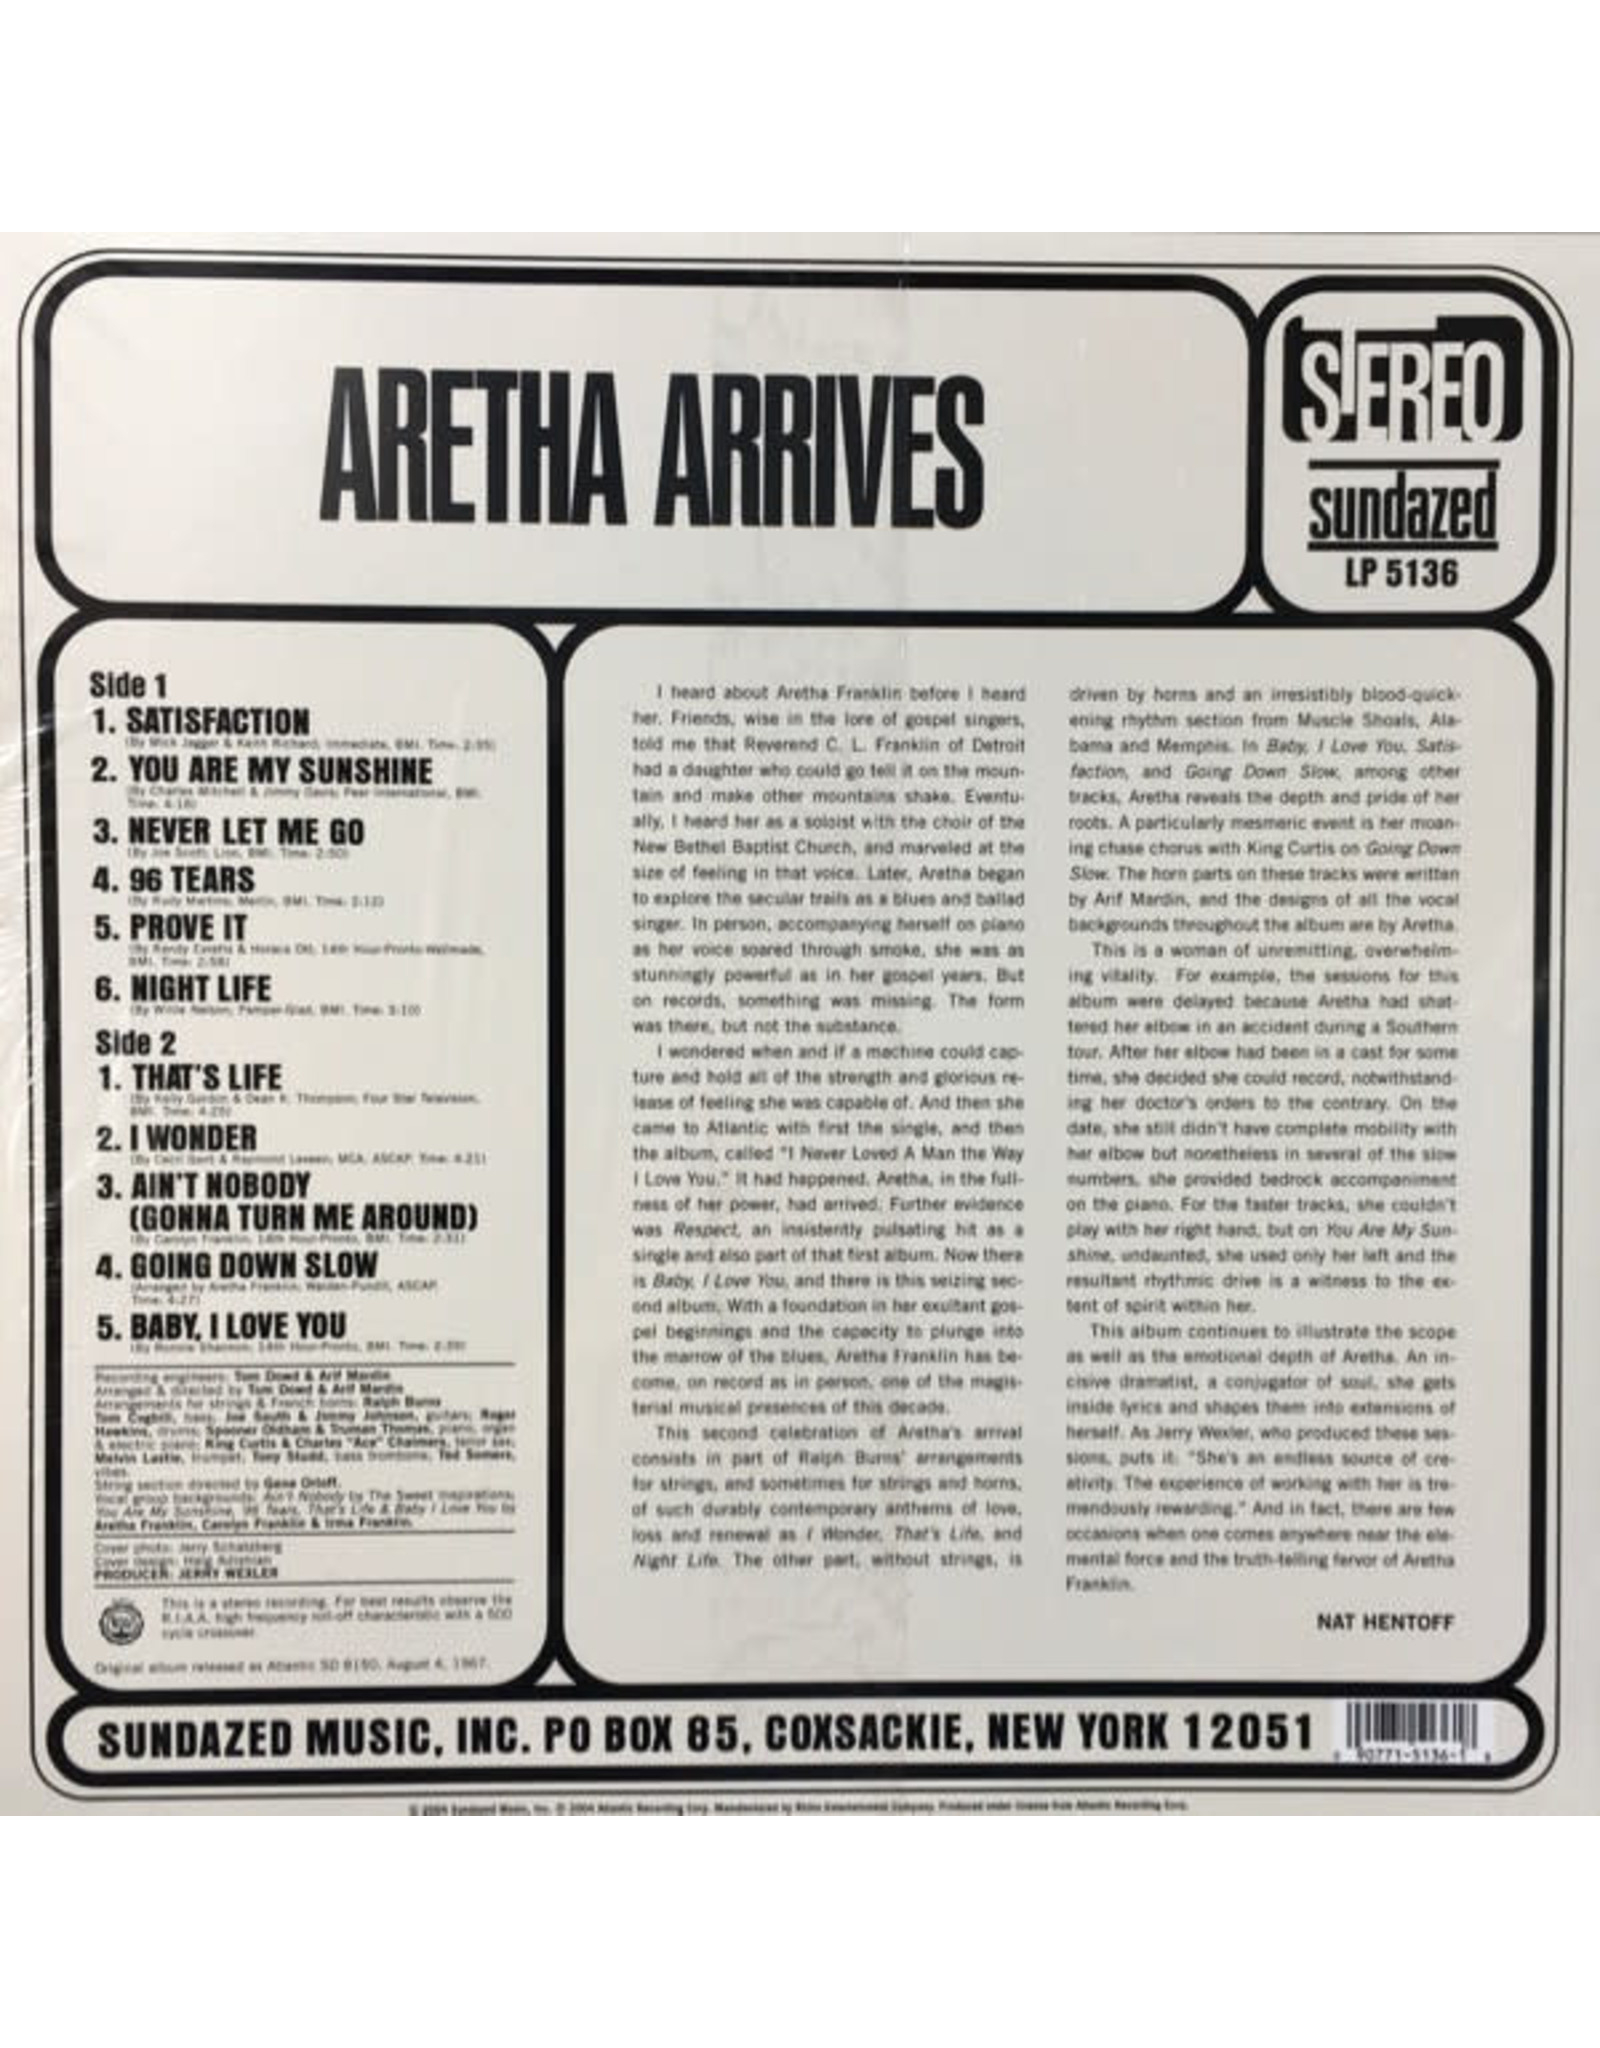 Aretha Franklin - Aretha Arrives (50th Anniversary) [Mono]